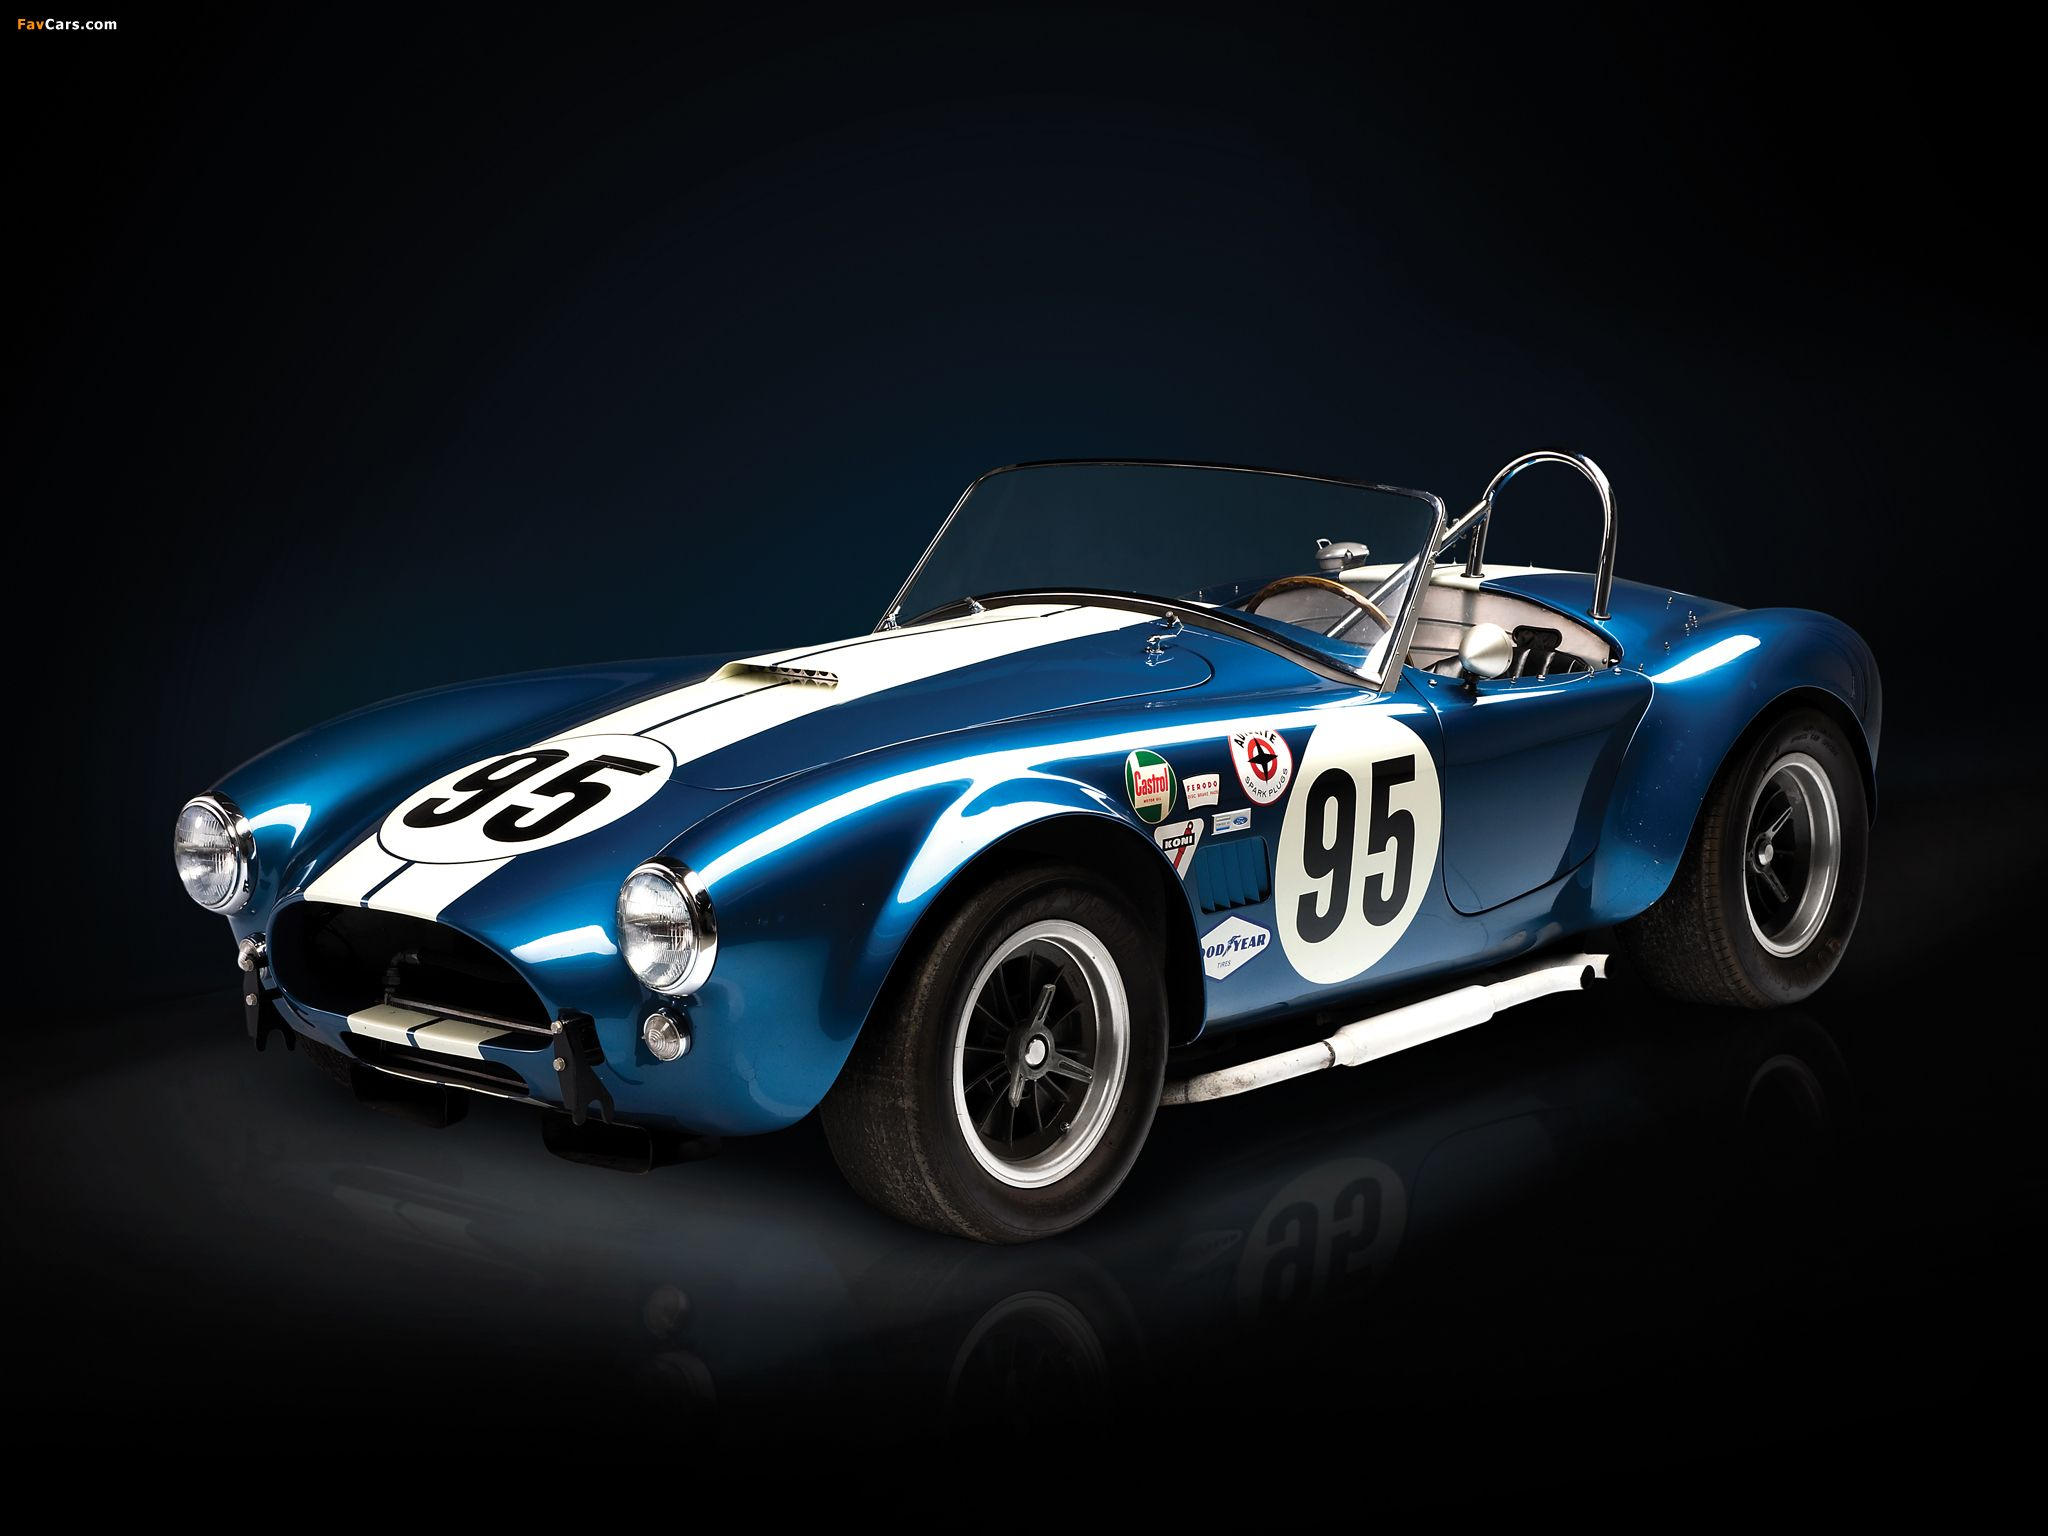 Sports Cars | Things I Like | Pinterest | Sports cars, Cars and ...